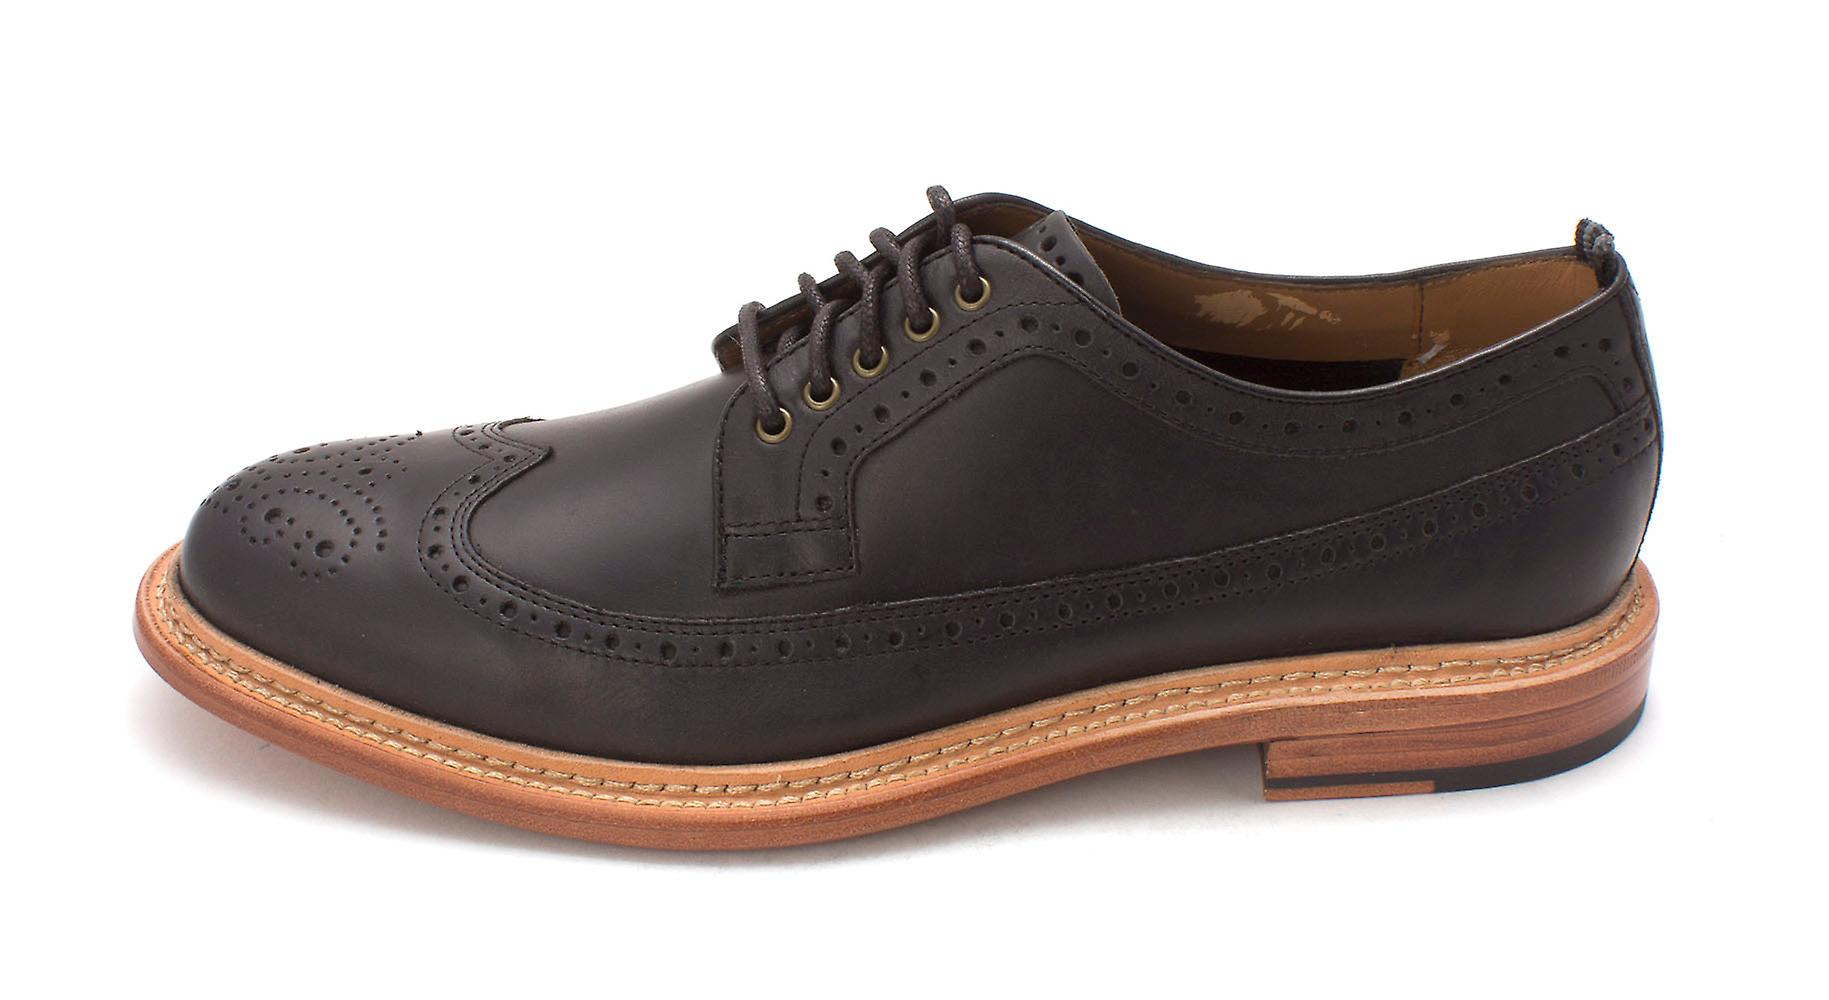 Cole Haan Mens Willet - ala lunga Ox Leather Lace Up Oxfords Dress